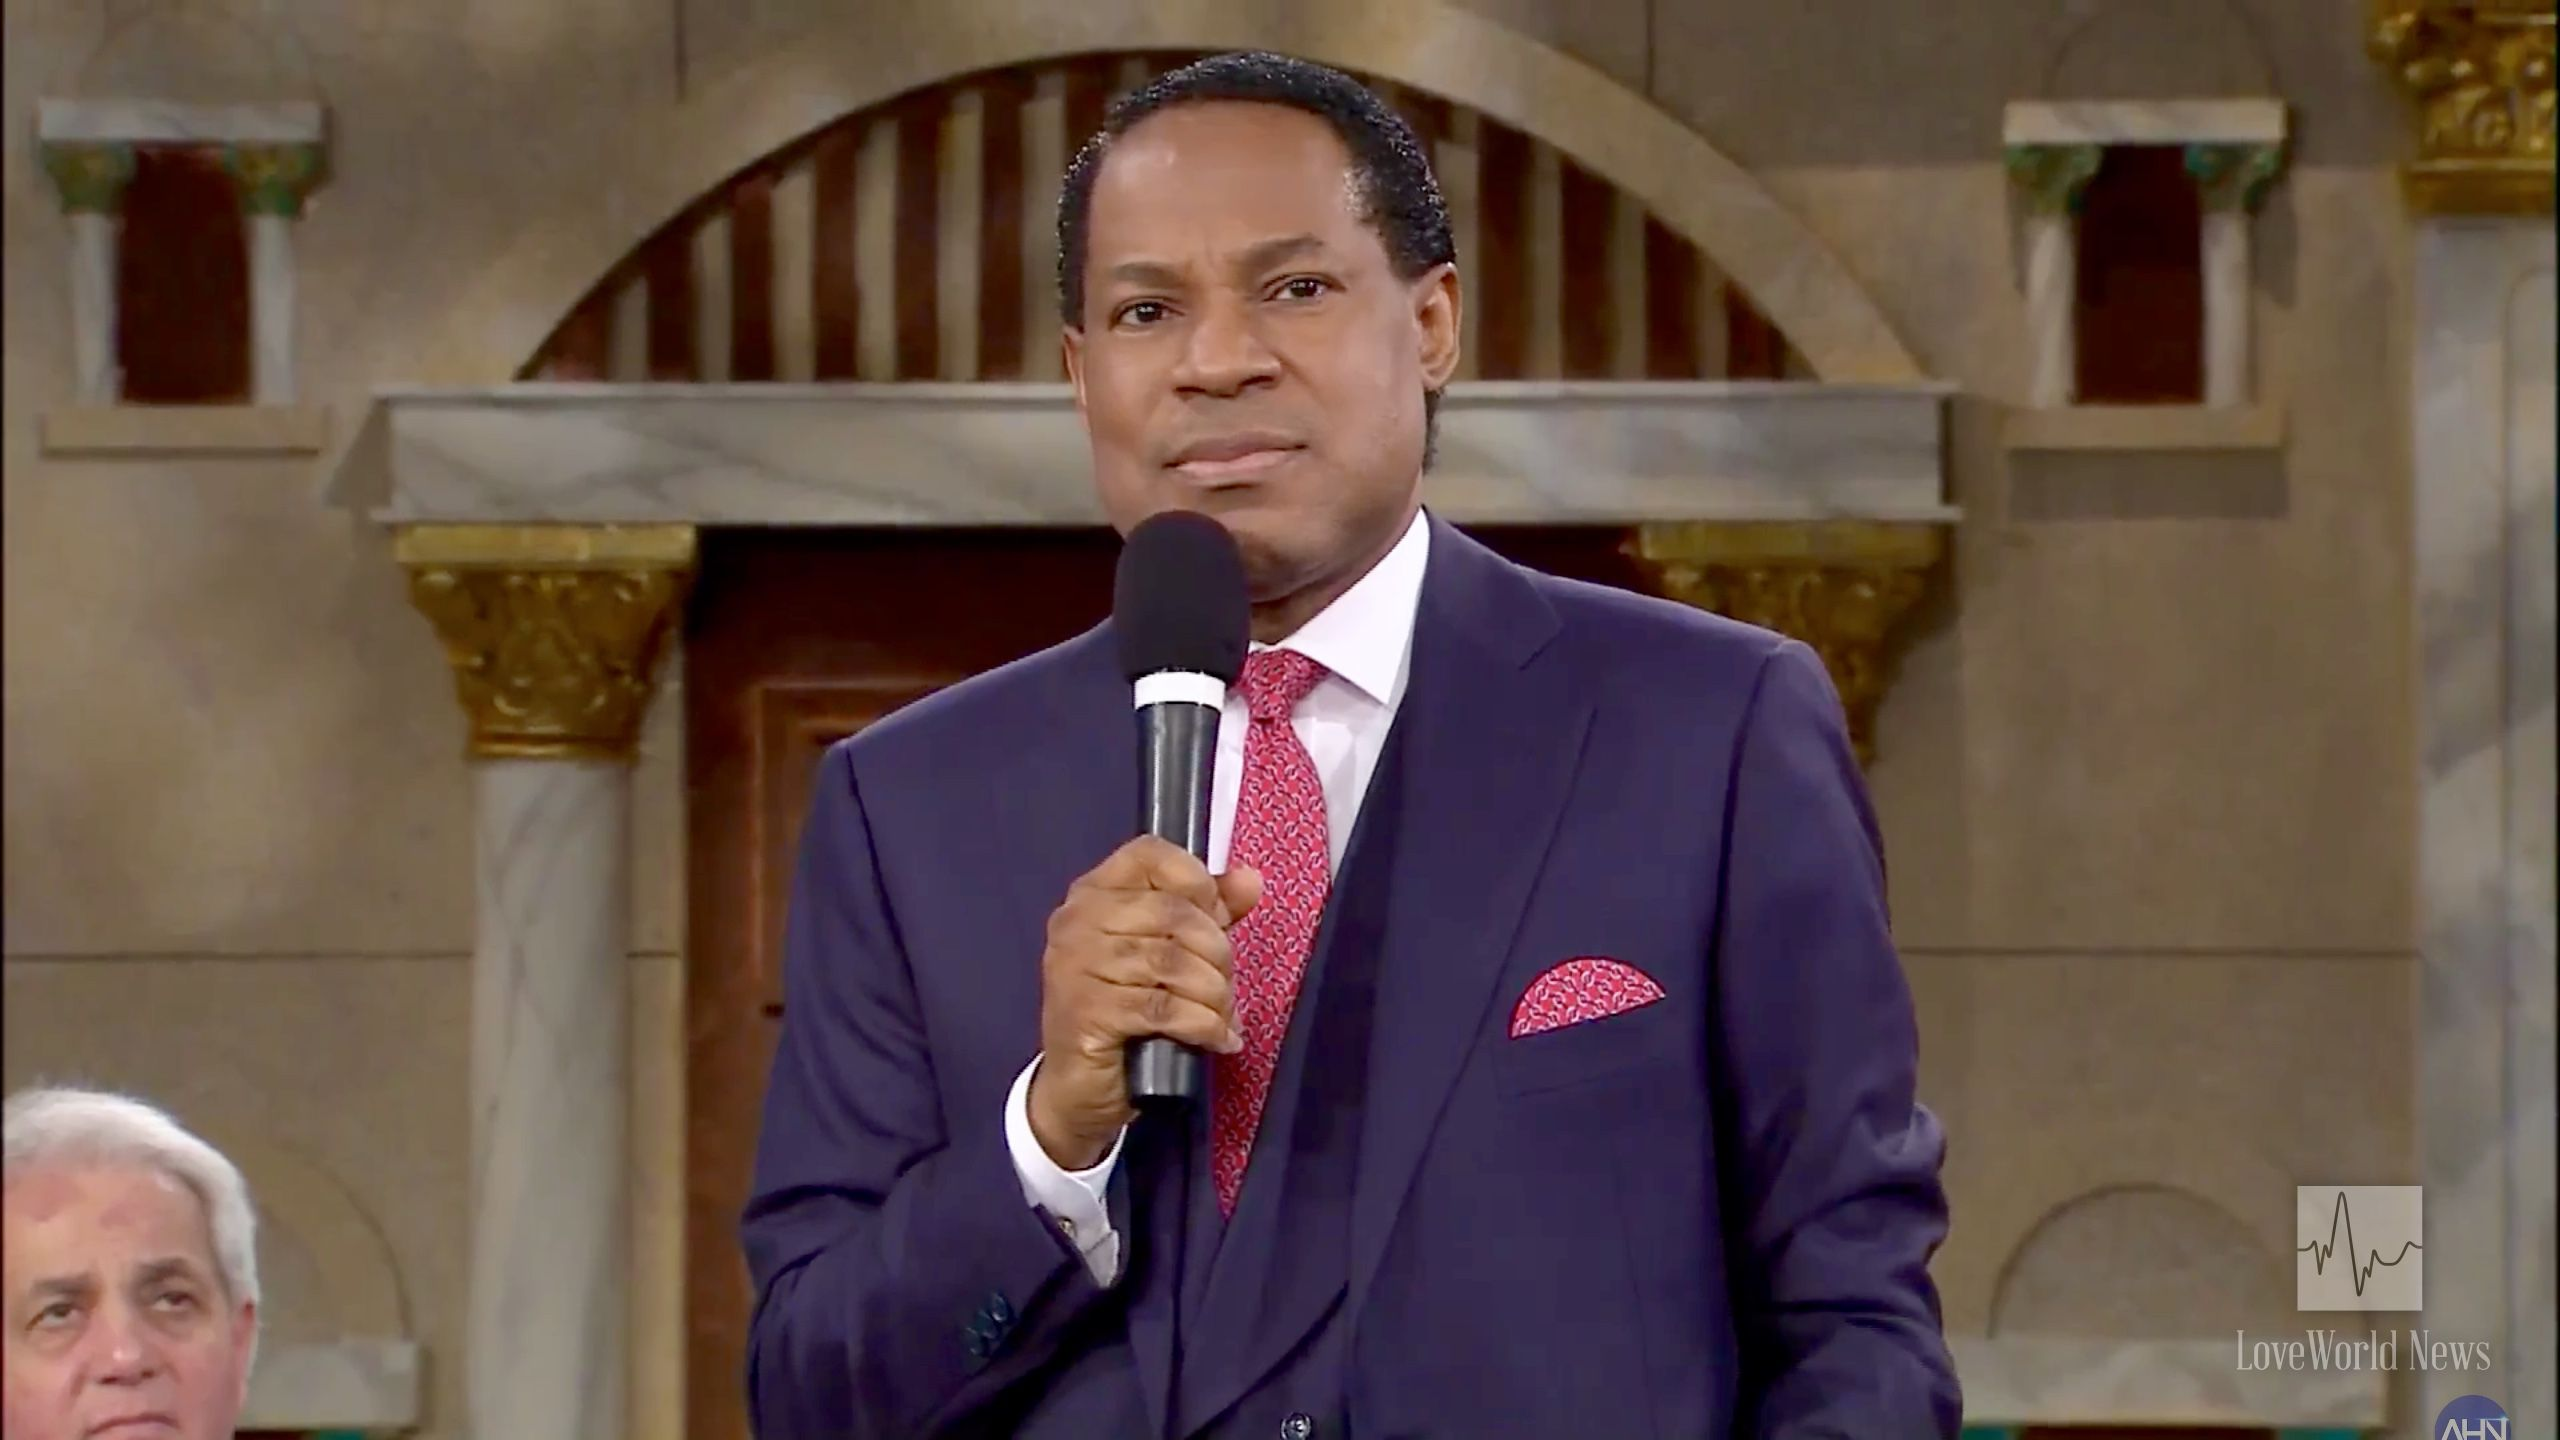 '5 Solid Facts of the Gospel' — Pastor Chris at Benny Hinn Ministries